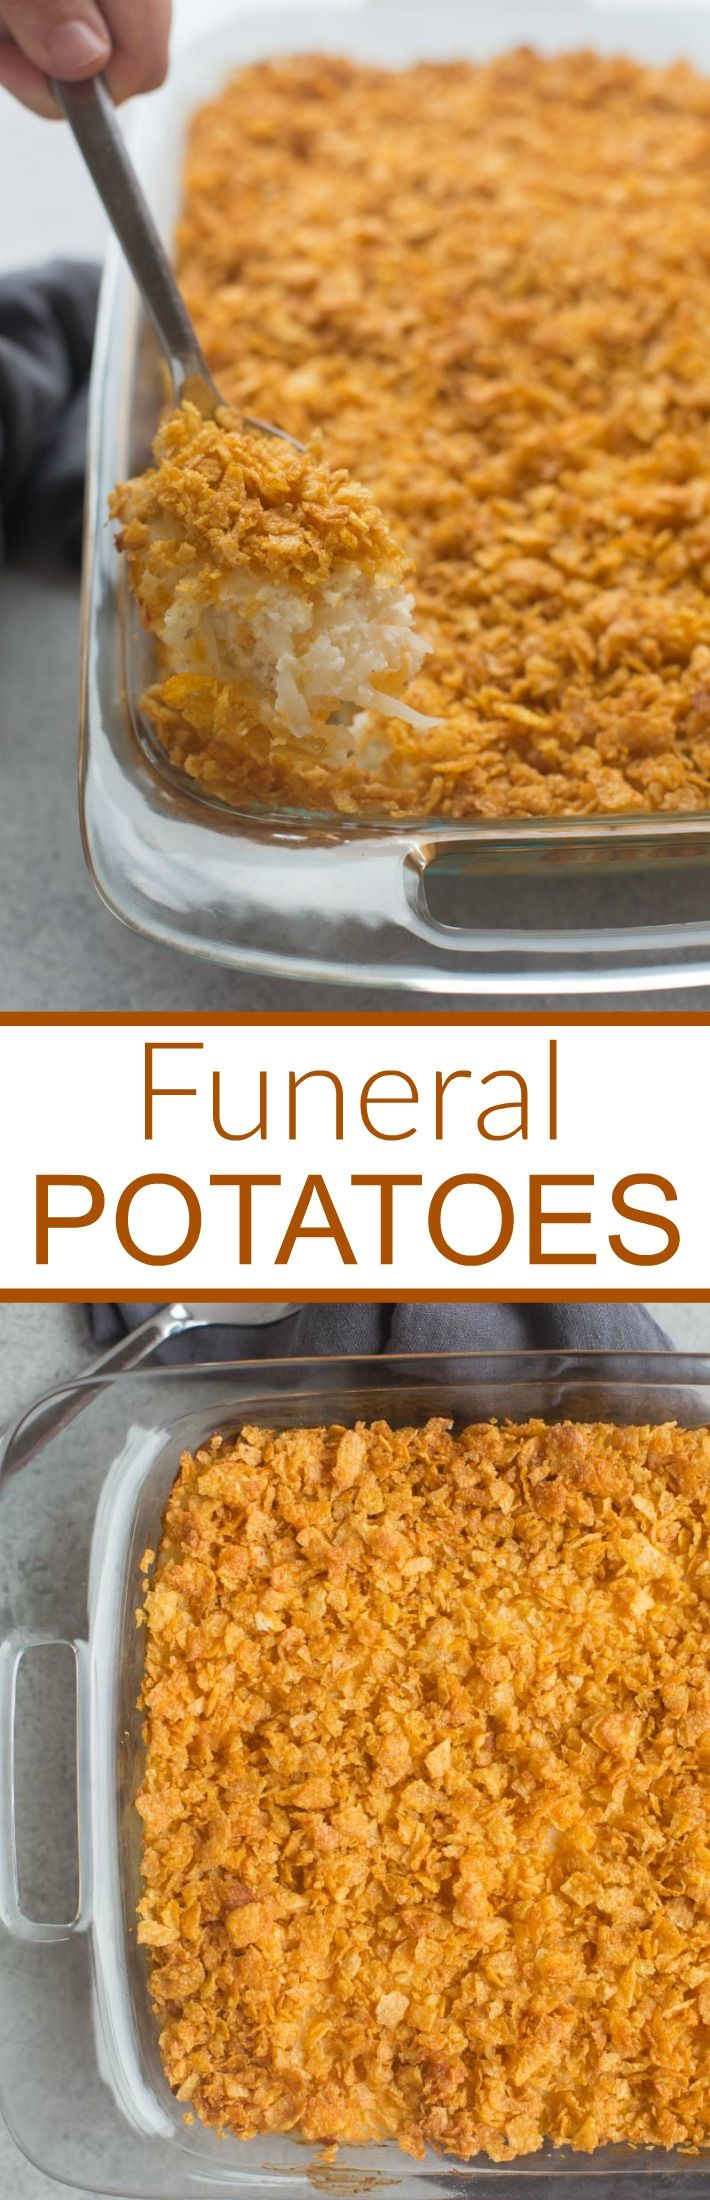 Easy, cheesy funeral potatoes are a delicious hash brown casserole that makes the perfect warm, comforting side dish!| Tastes Better From Scratch